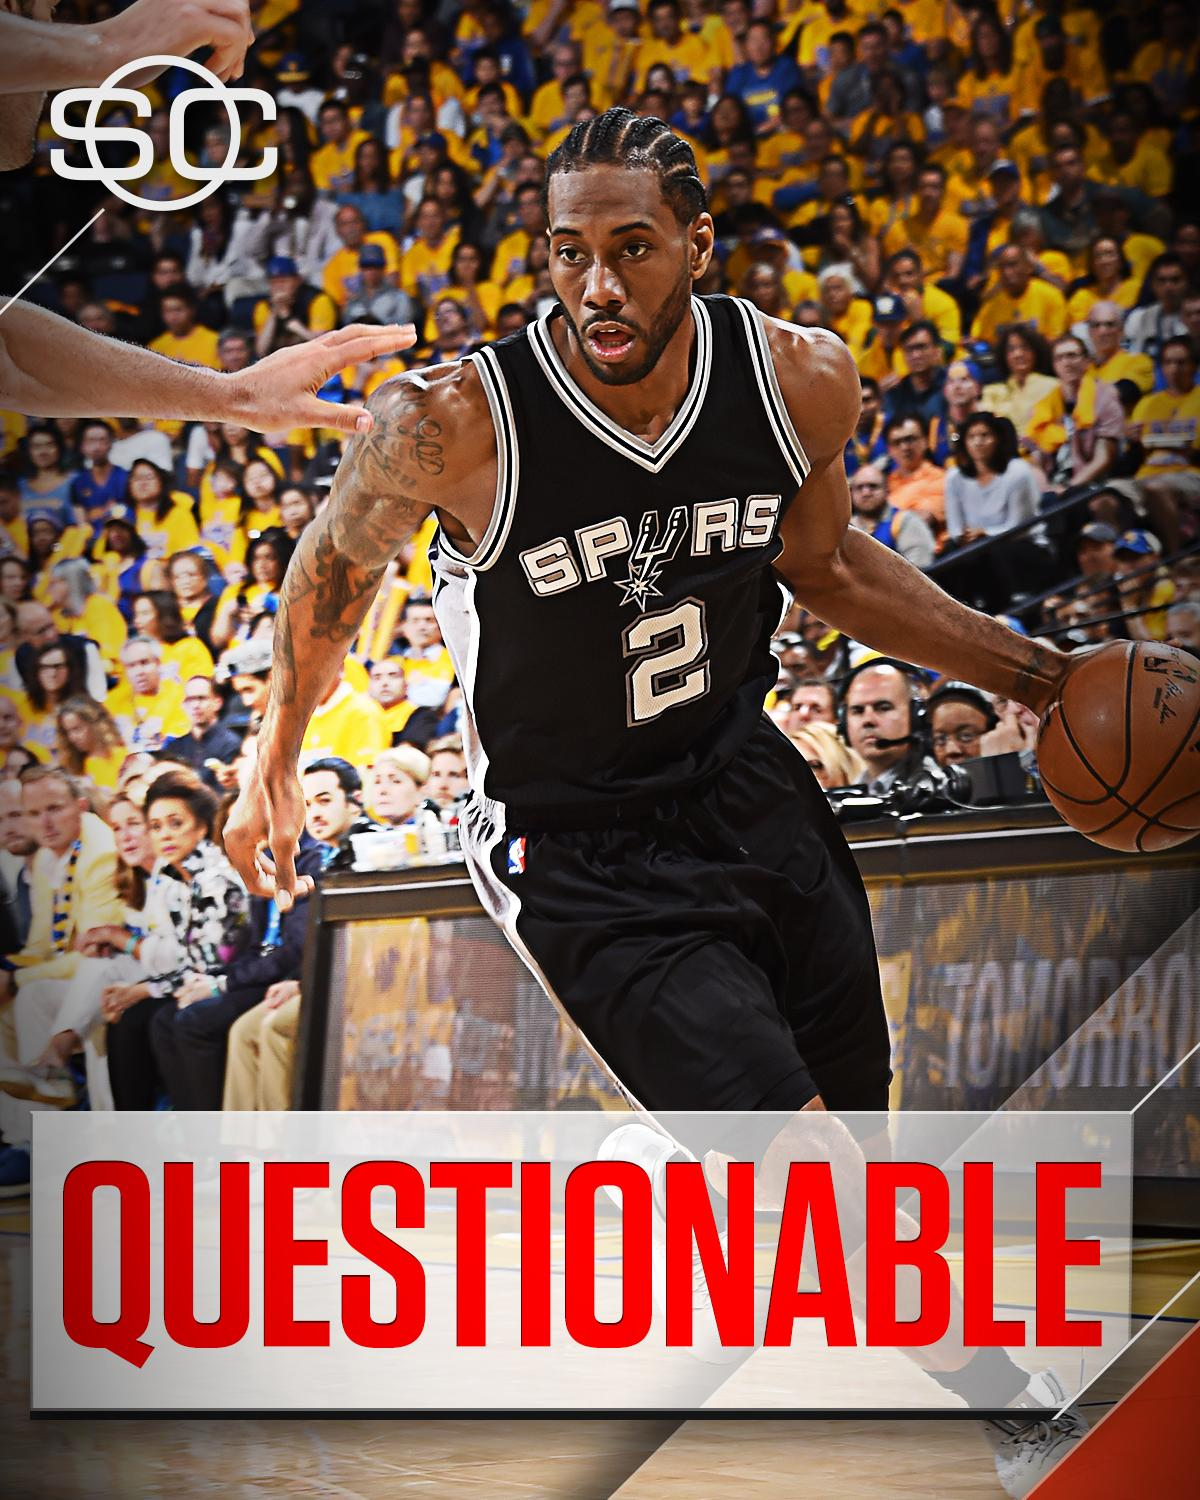 This Just In: Spurs announce Kawhi Leonard is questionable for Game 3 against the Warriors. https://t.co/7tzuNsU78F